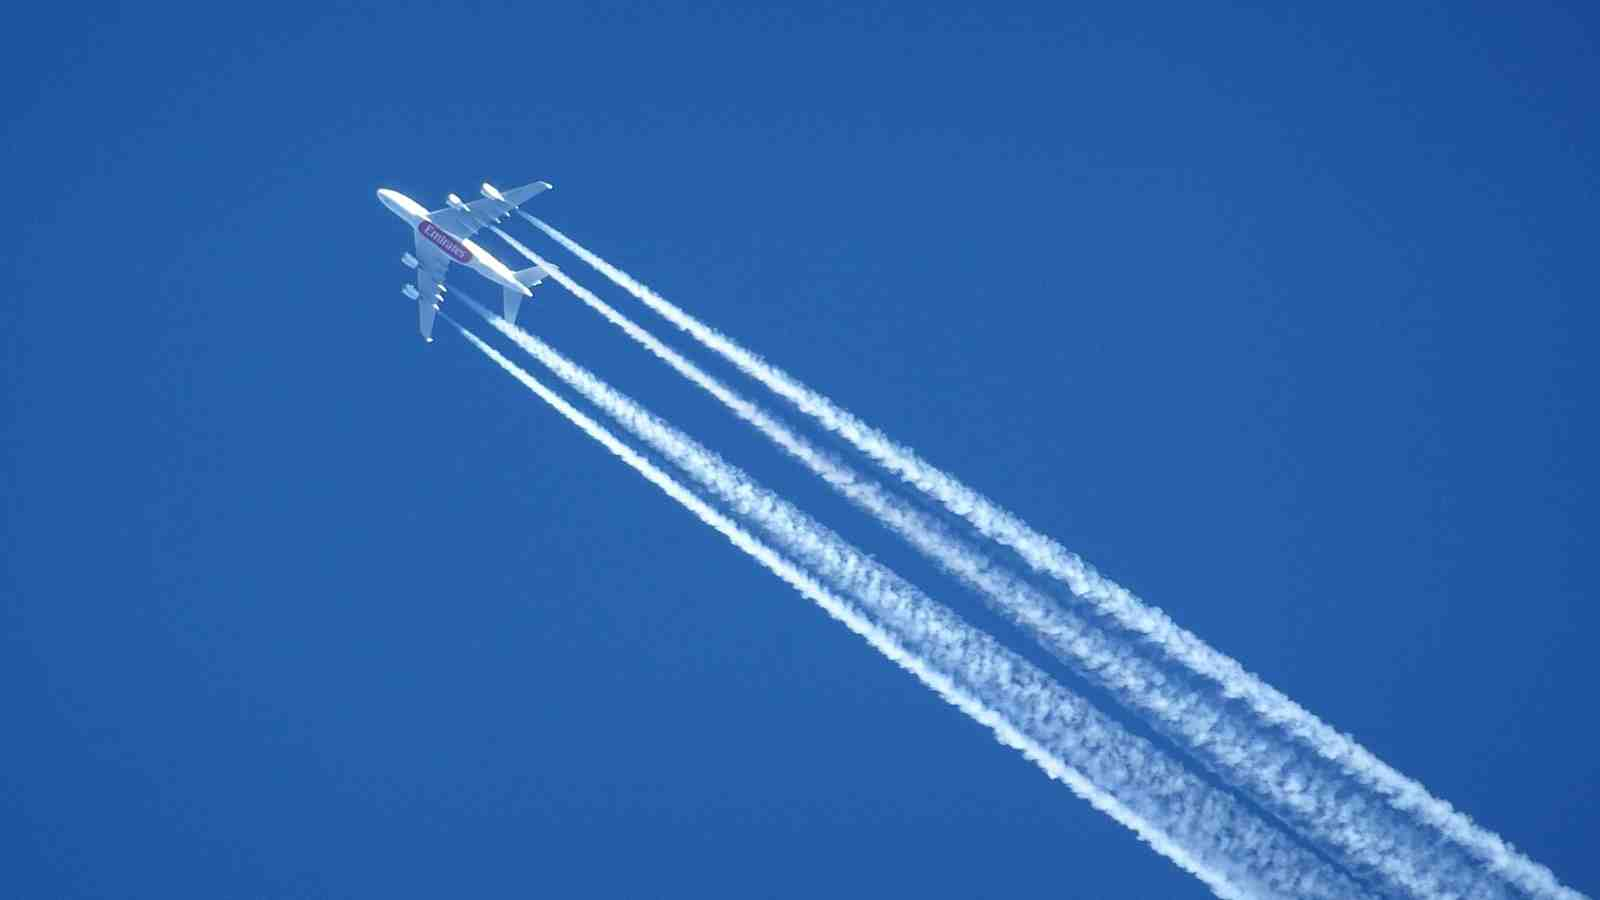 image of flying planes leaving emissions across the sky